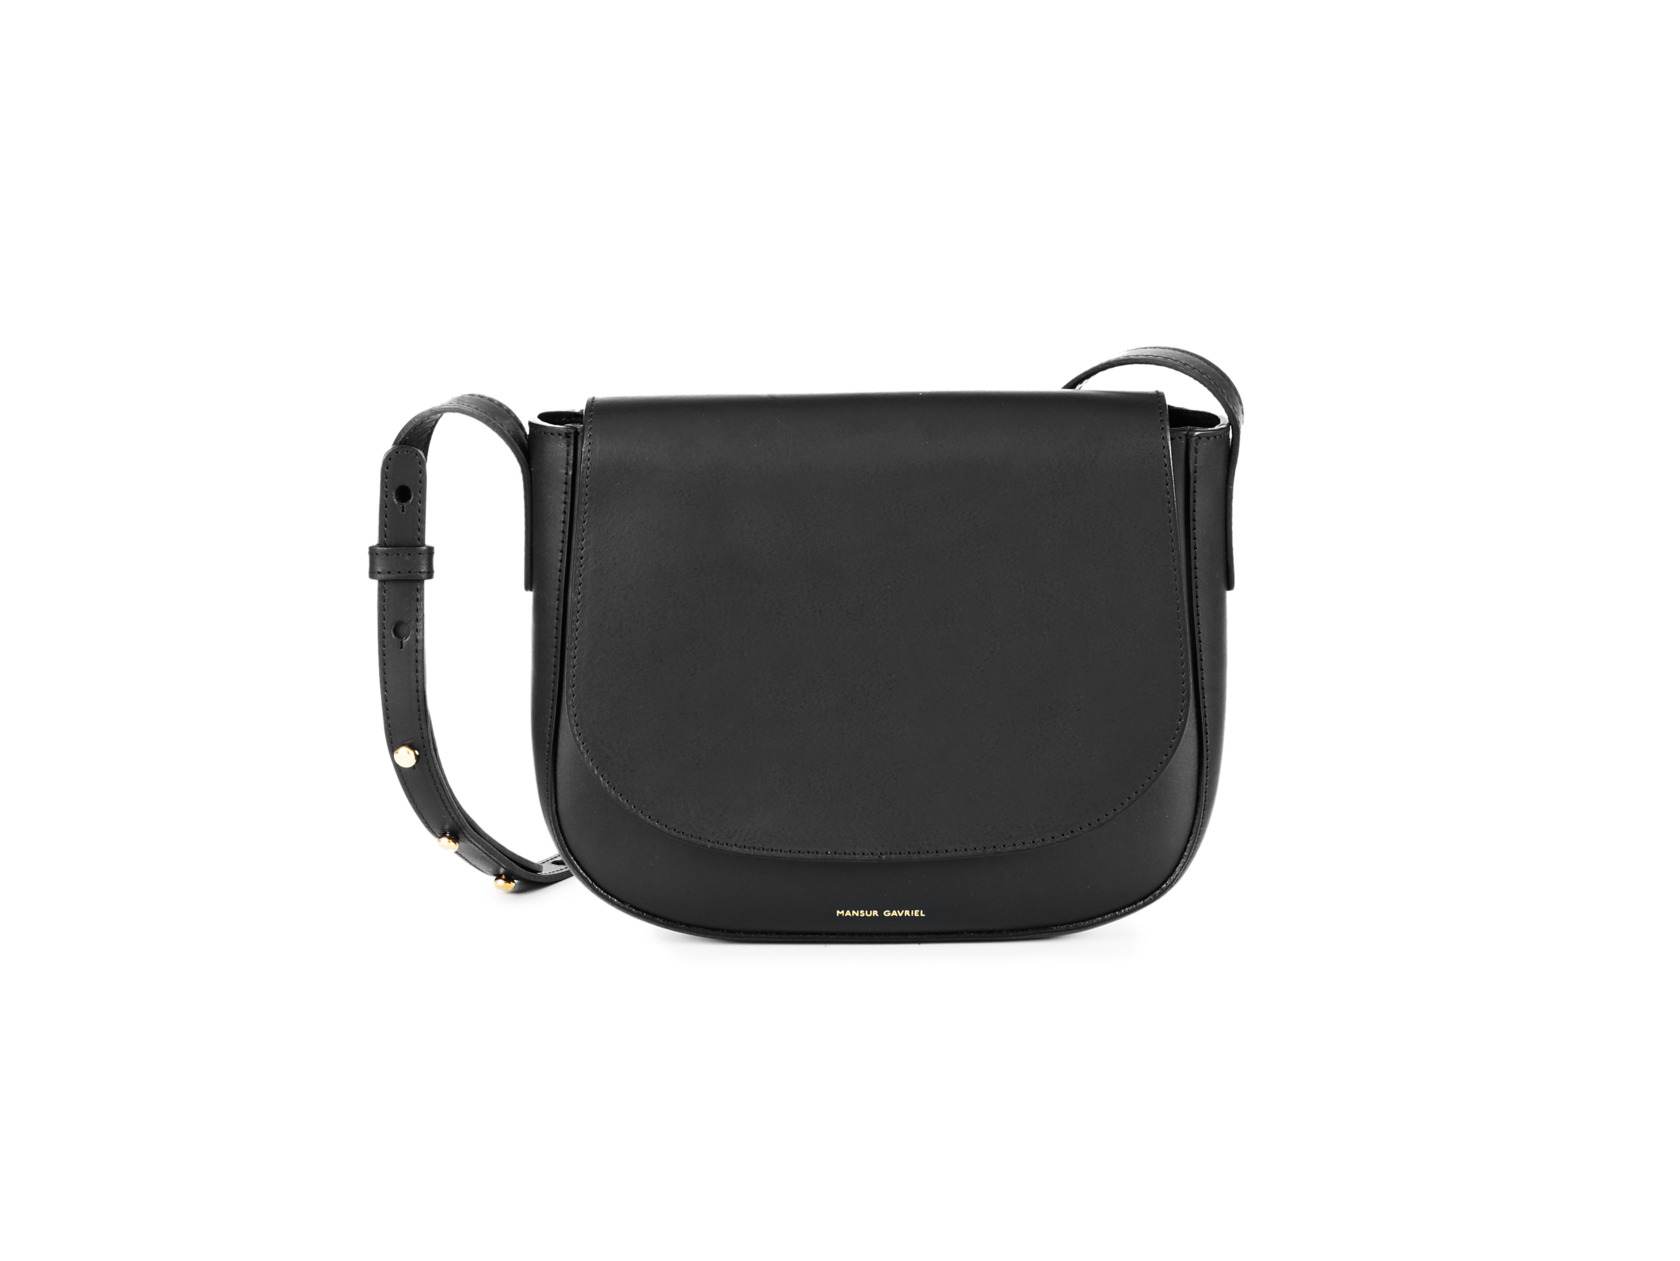 crossbody-black-nocrop-w840-h1330-2x